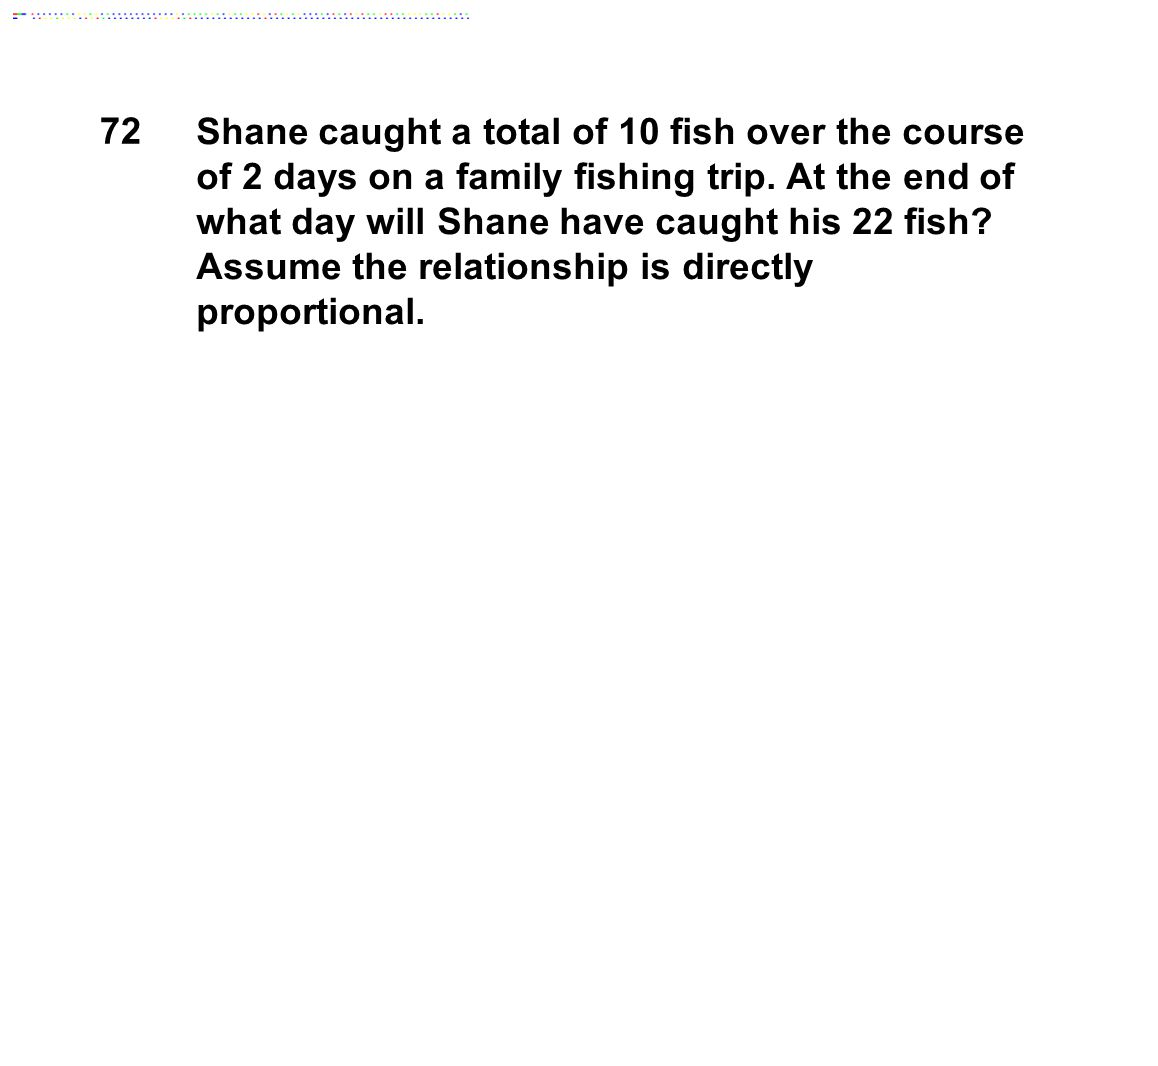 Shane caught a total of 10 fish over the course of 2 days on a family fishing trip. At the end of what day will Shane have caught his 22 fish? Assume